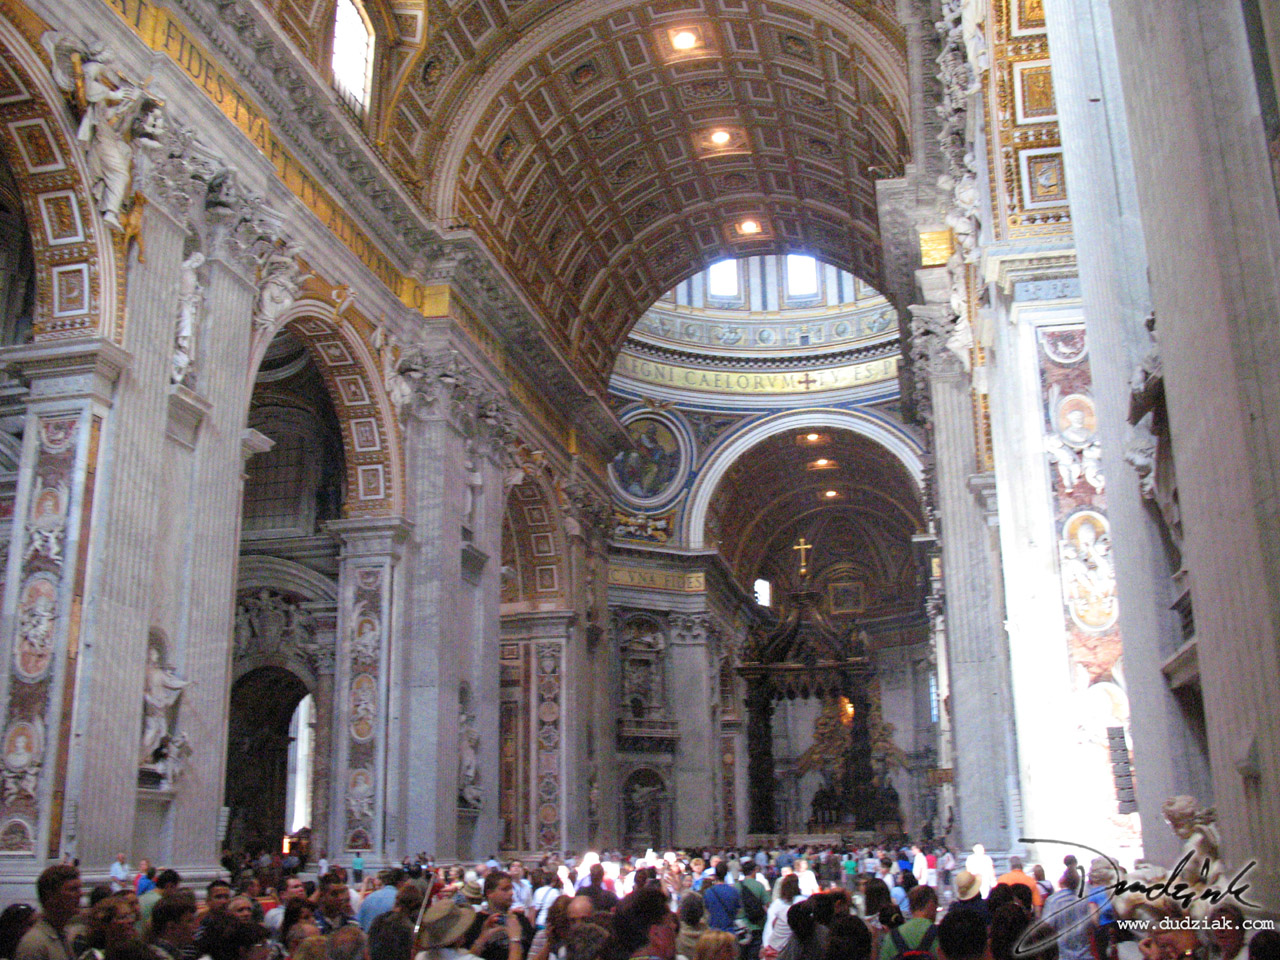 Saint Peter's Basilica interior.